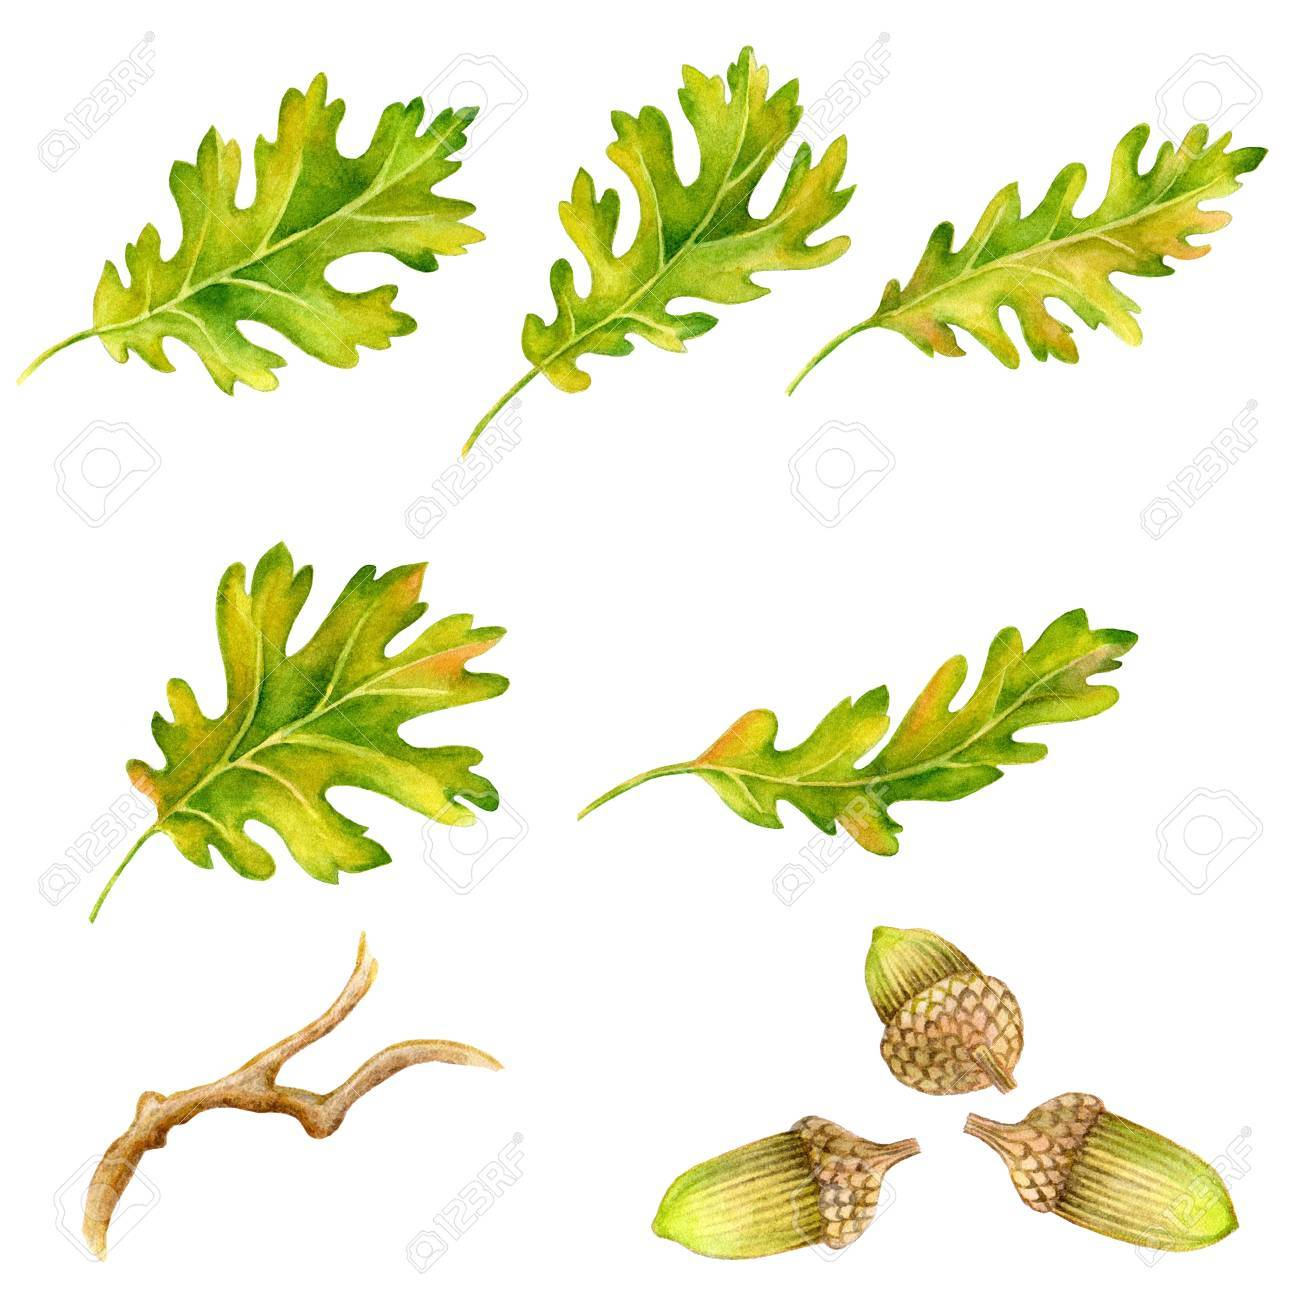 Watercolor leaves, branches and acorns. Hand drawn illustration - 67669955